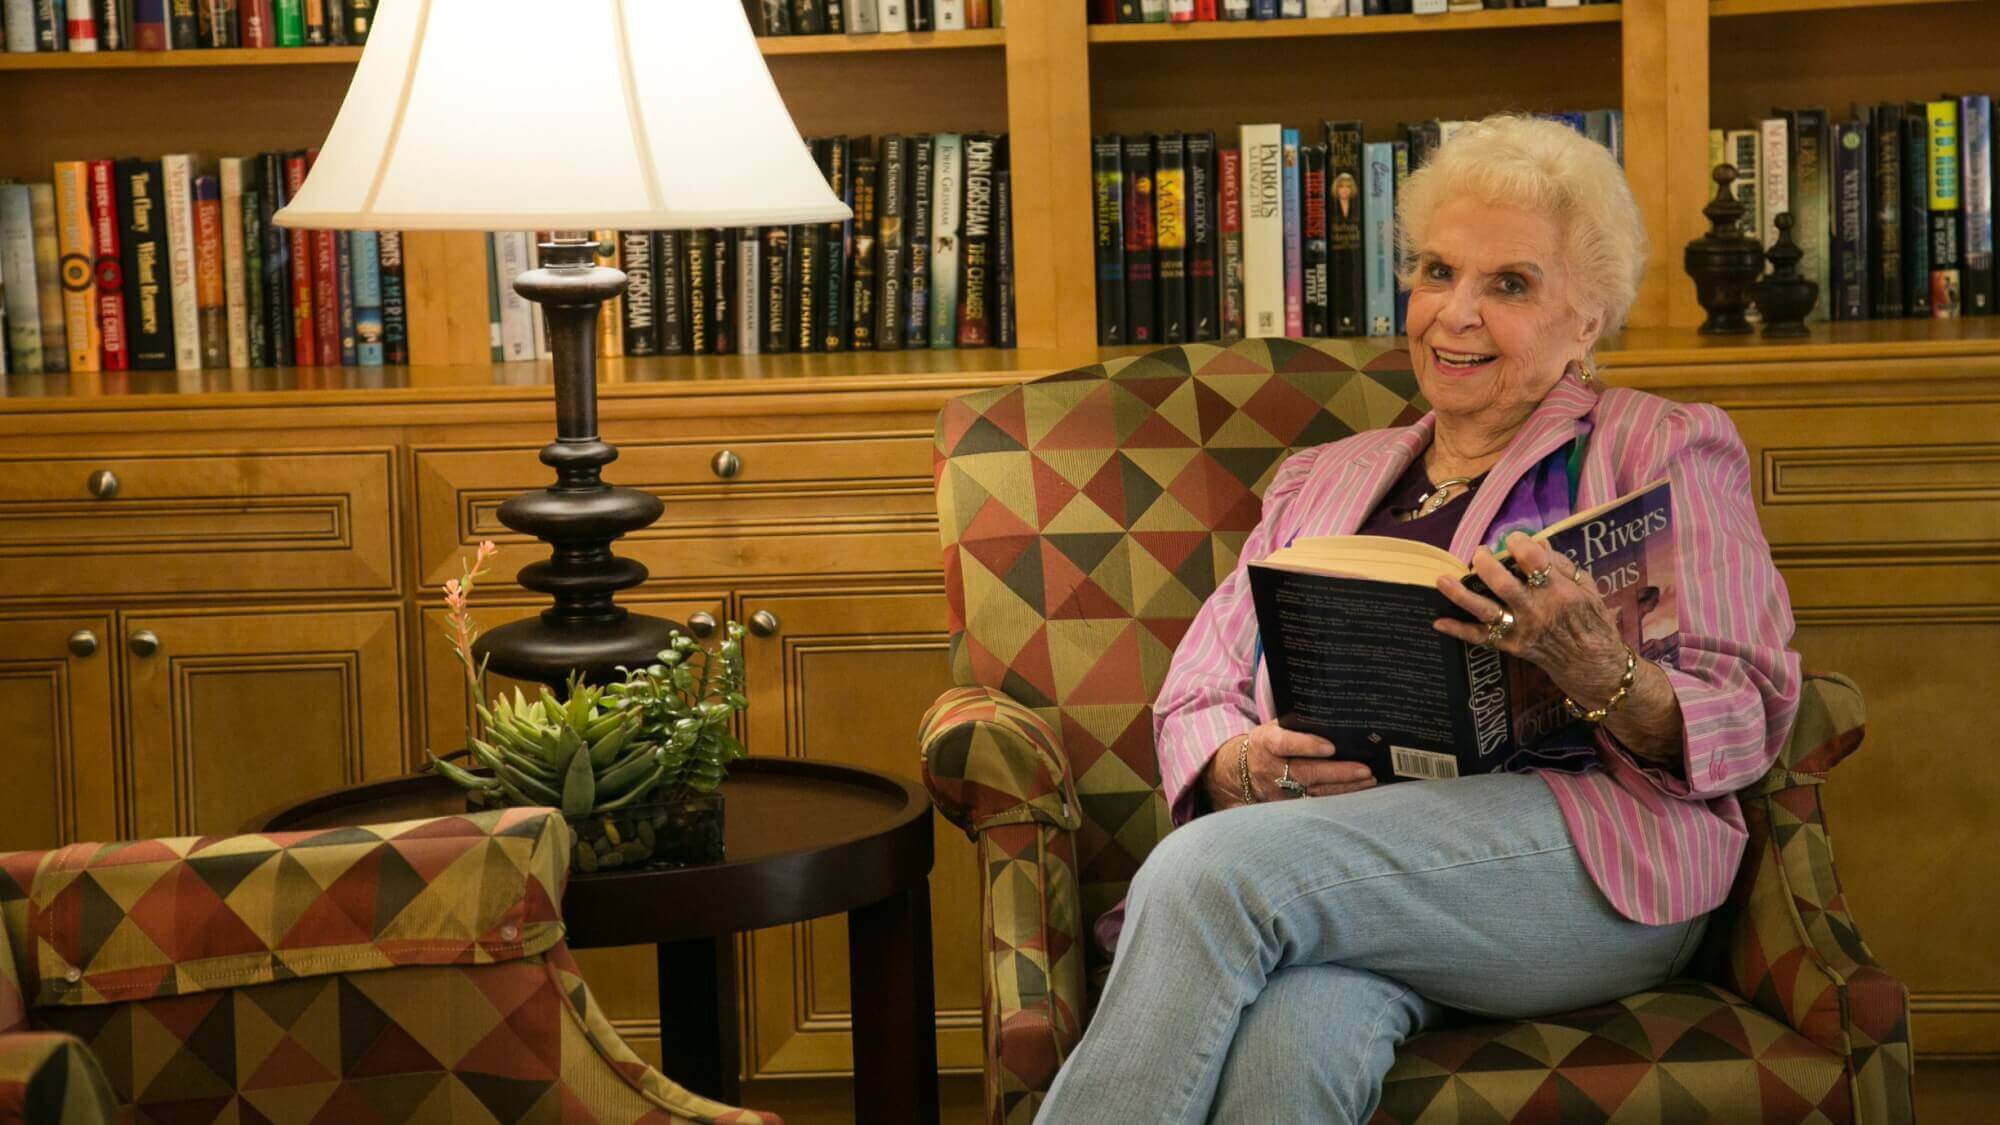 Senior in the library reading a book at Resort Lifestyle Community.